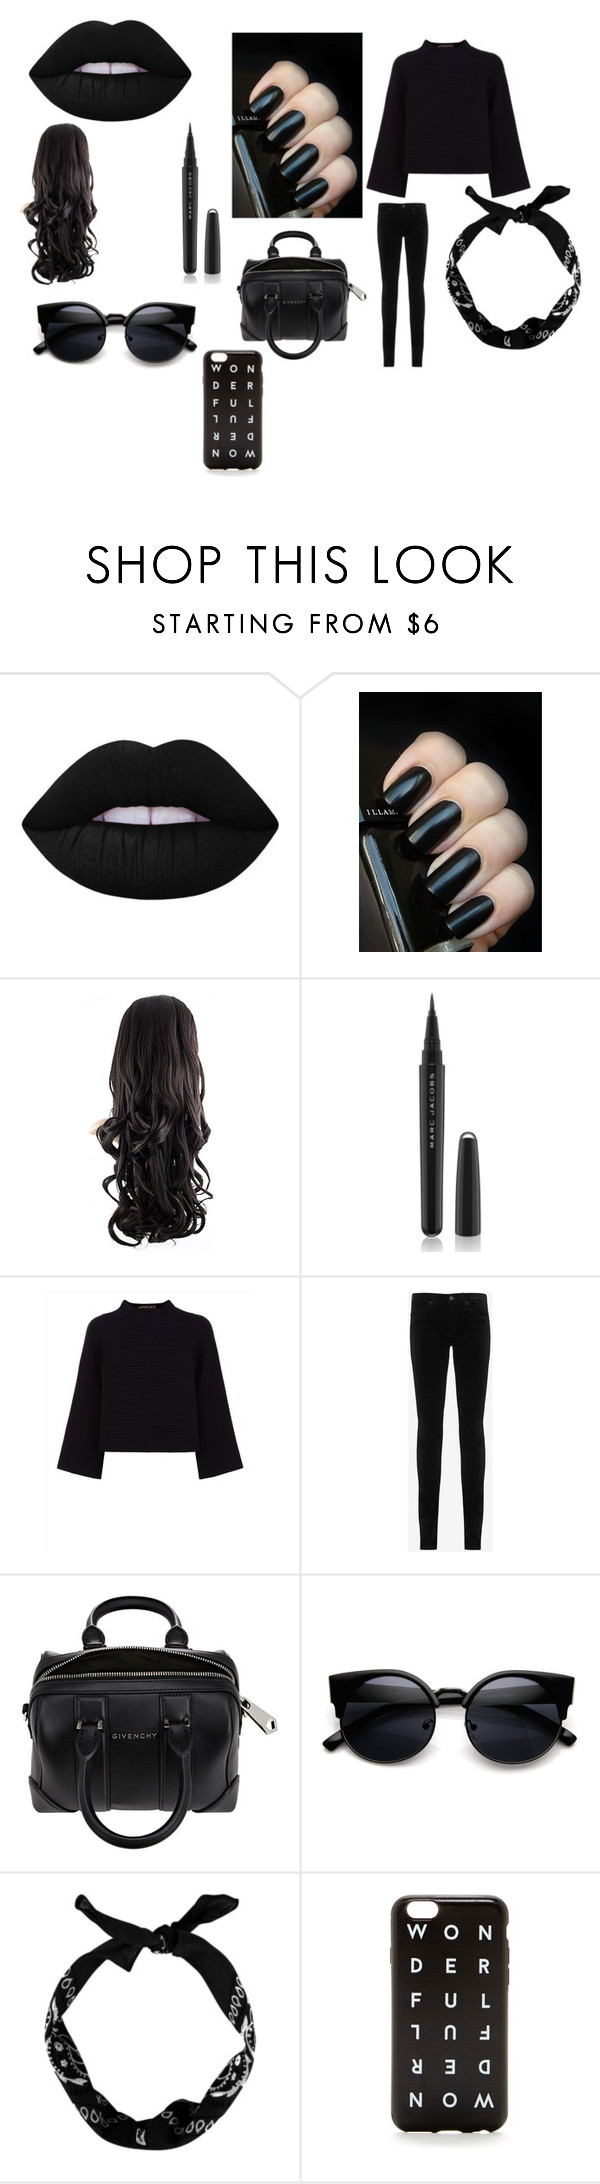 """""""haha. goth"""" by hope2021 ❤ liked on Polyvore featuring Lime Crime, Marc Jacobs, Jaeger, AG Adriano Goldschmied, Givenchy and J.Crew"""